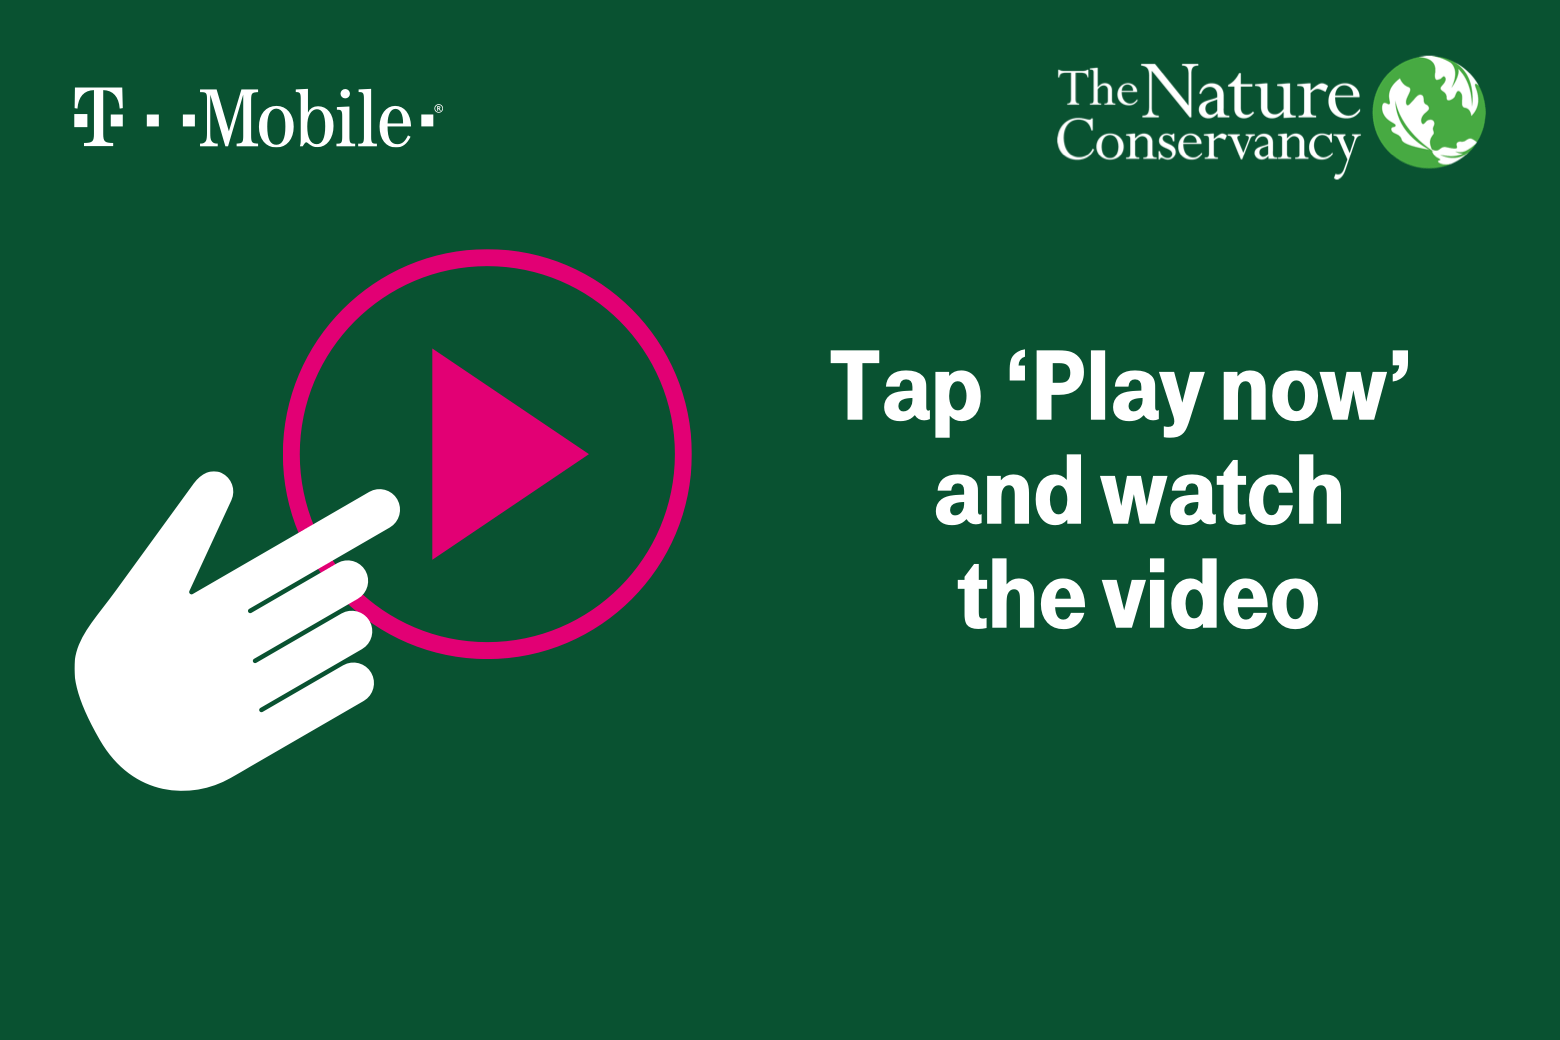 T-Mobile. The Nature Conservancy. Tap 'Play now' and watch the video